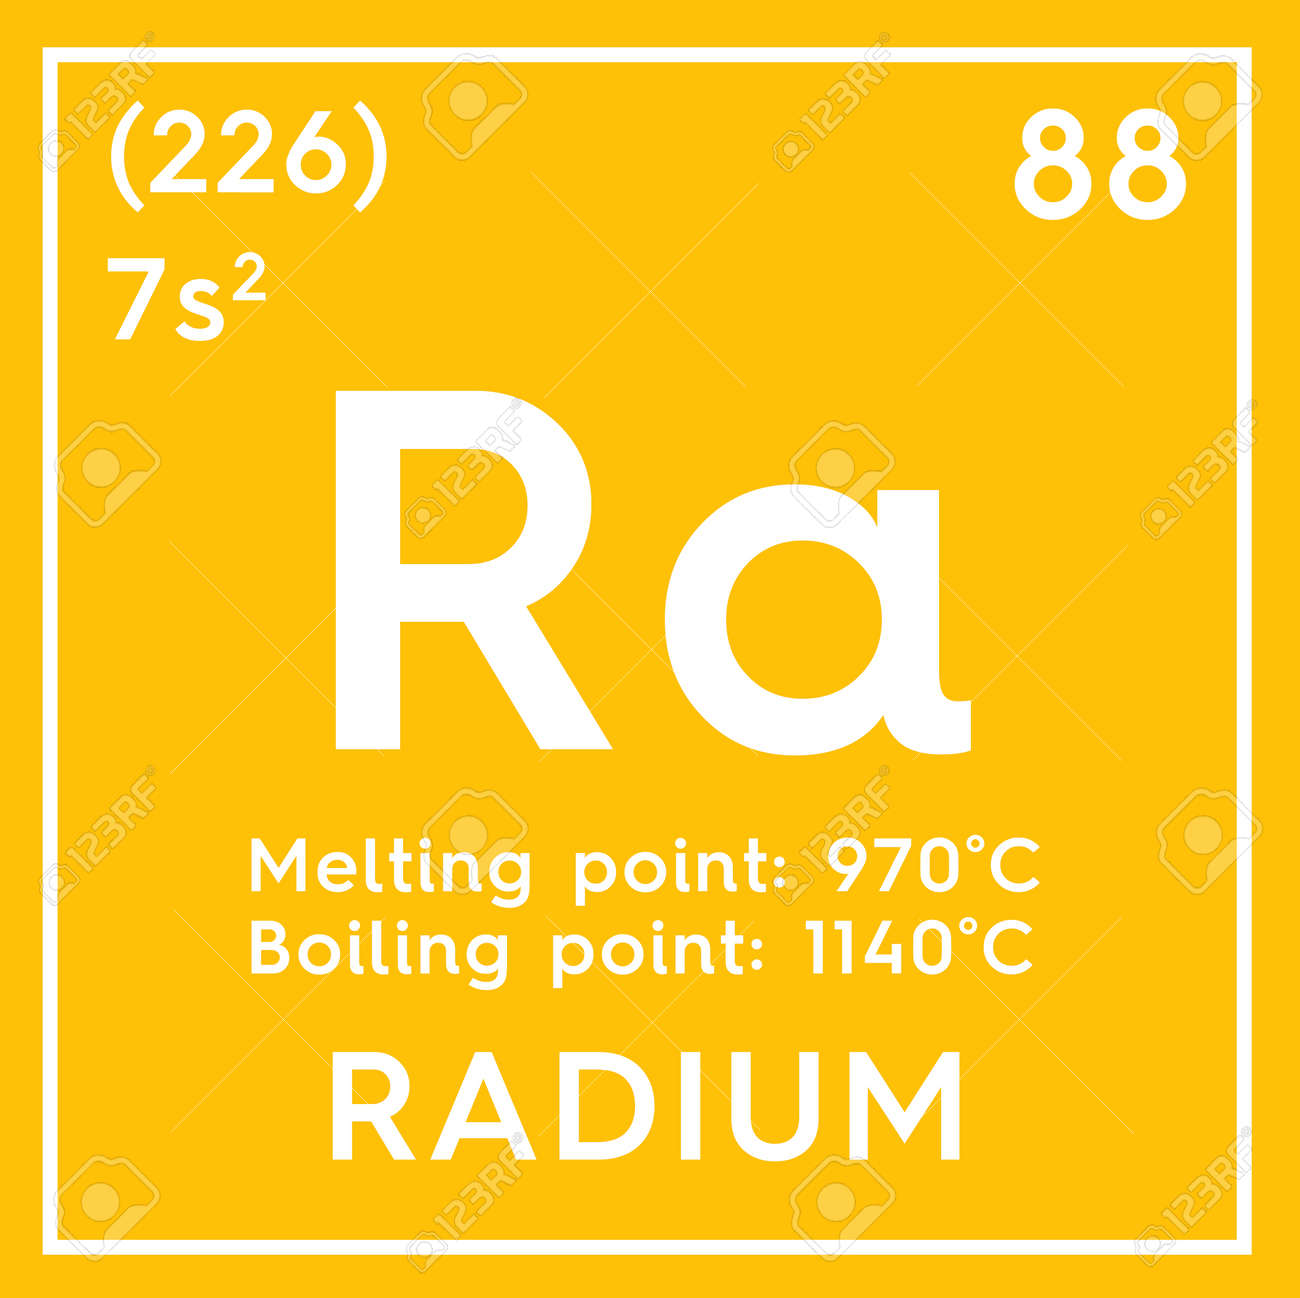 Radium alkaline earth metals chemical element of mendeleevs radium alkaline earth metals chemical element of mendeleevs periodic table radium in square buycottarizona